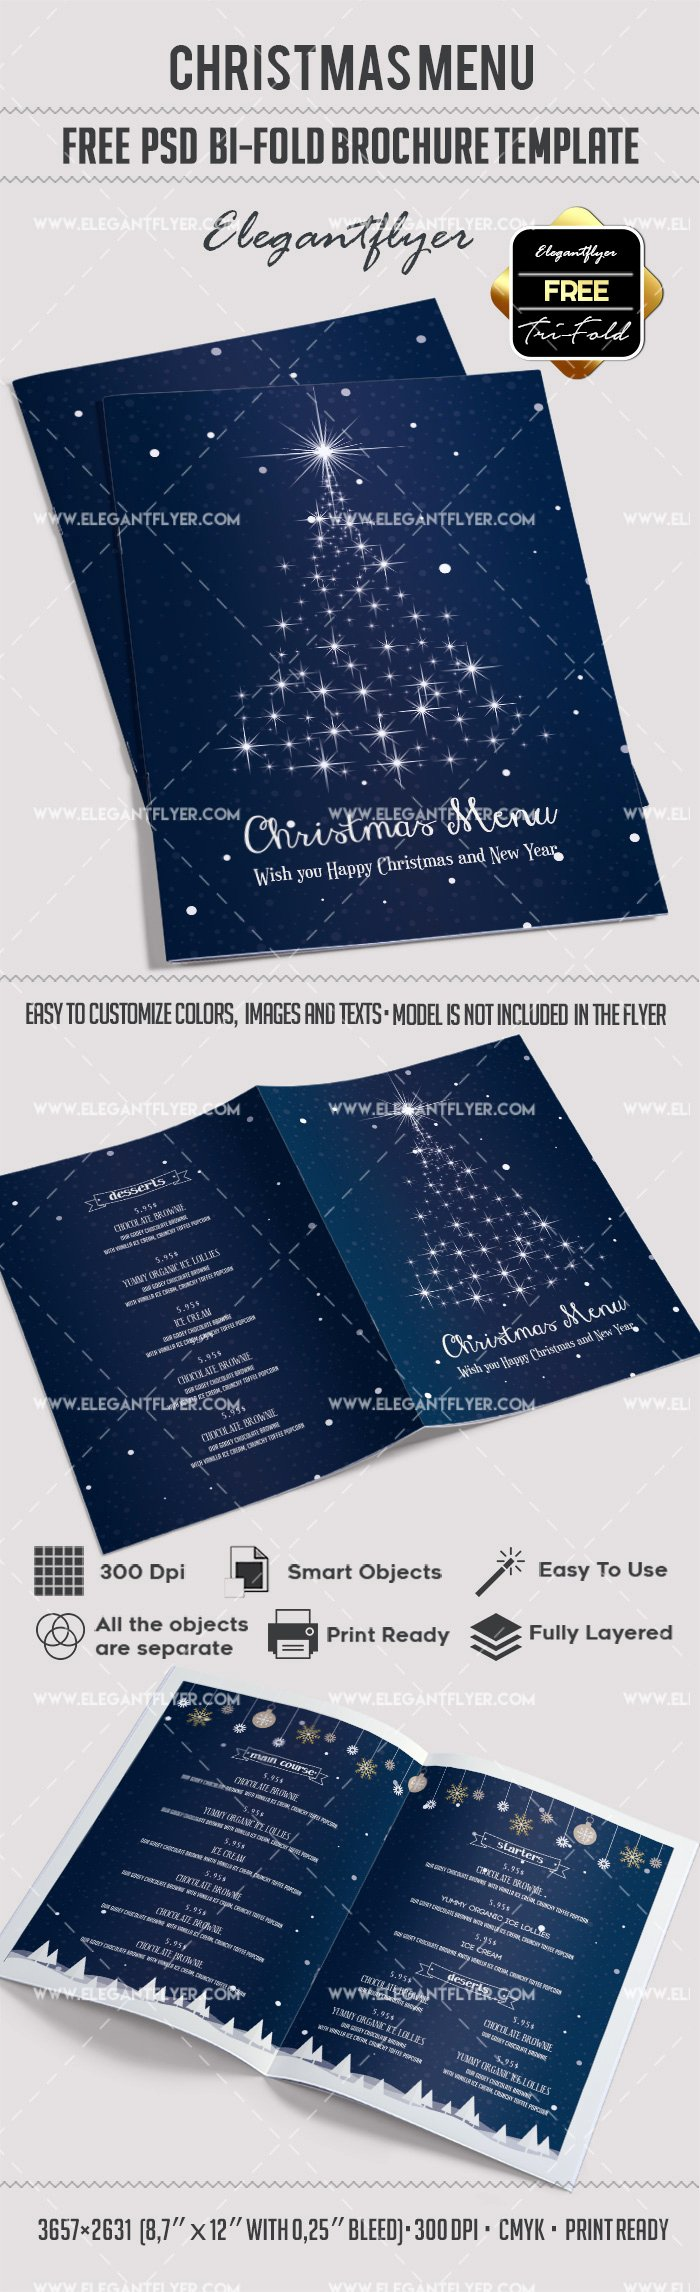 Bi Fold Brochure Template Unique Free Christmas Menu – Bi Fold Psd Brochure Template – by